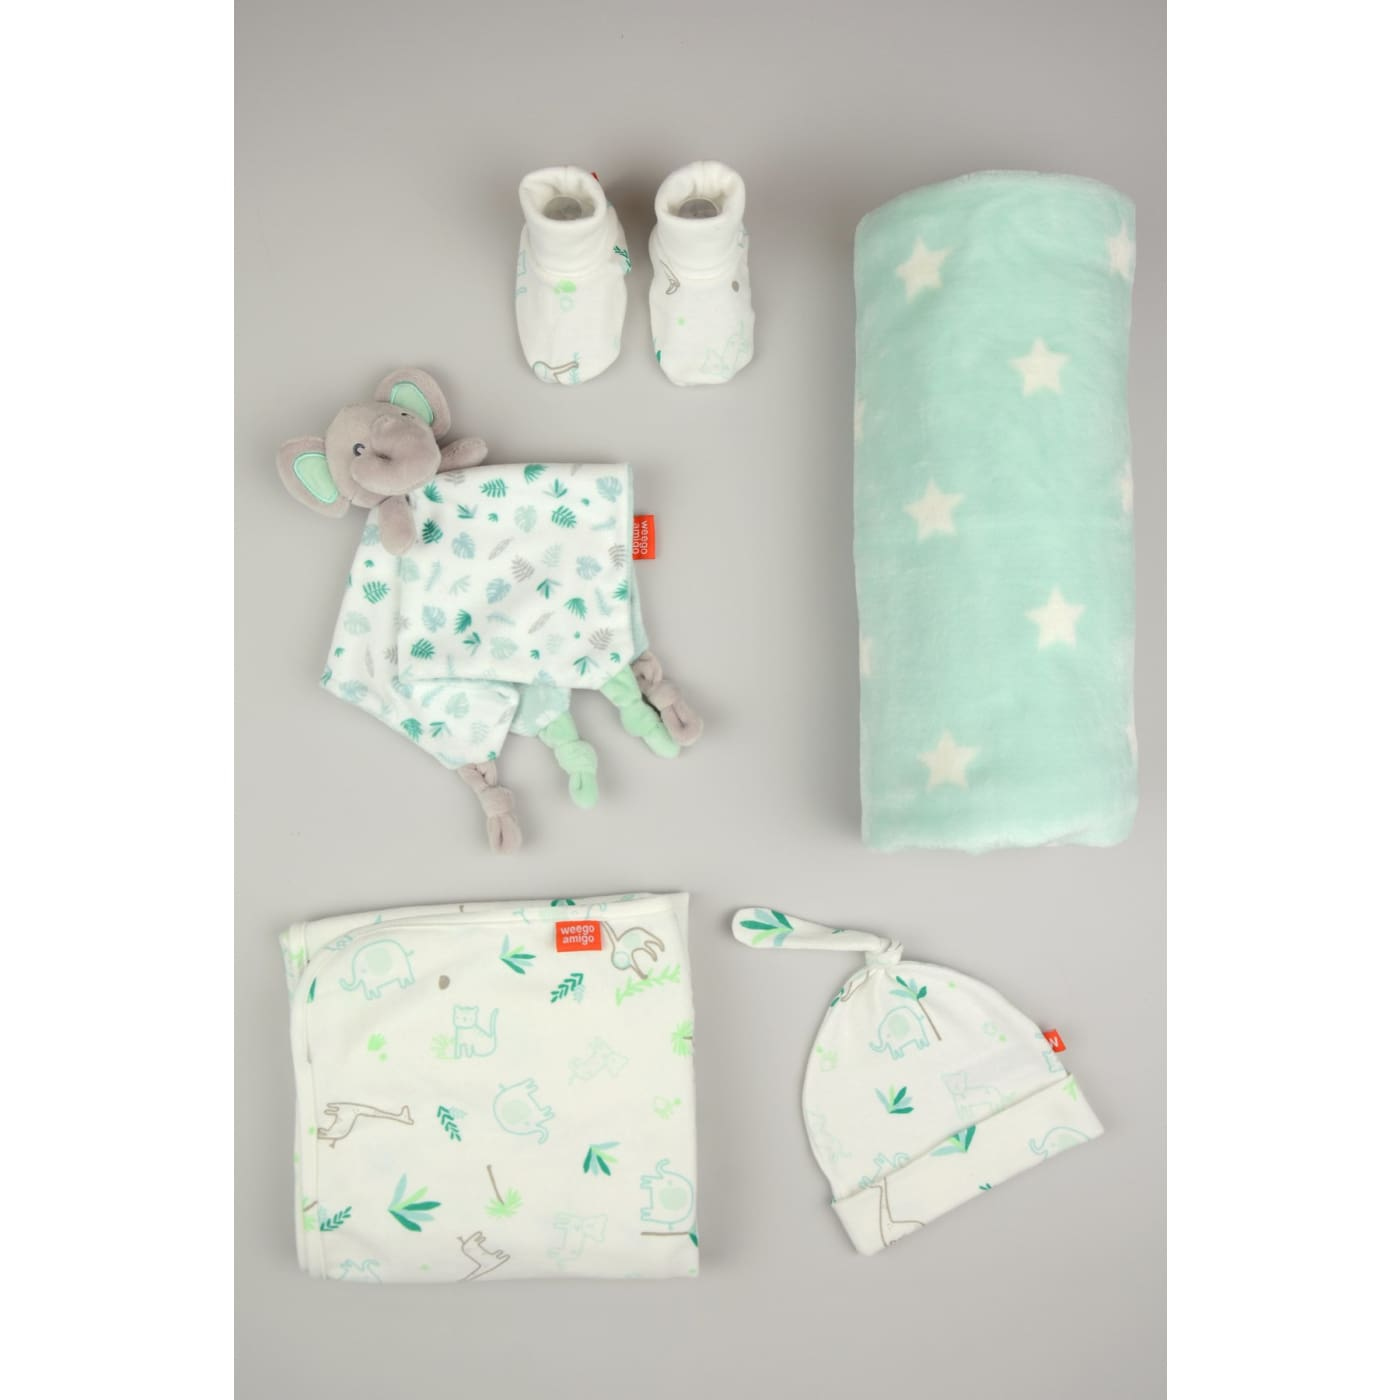 Weegoamigo Jersey and Fleece Gift Set - Echo the Elephant - Elephant - NURSERY & BEDTIME - SWADDLES/WRAPS